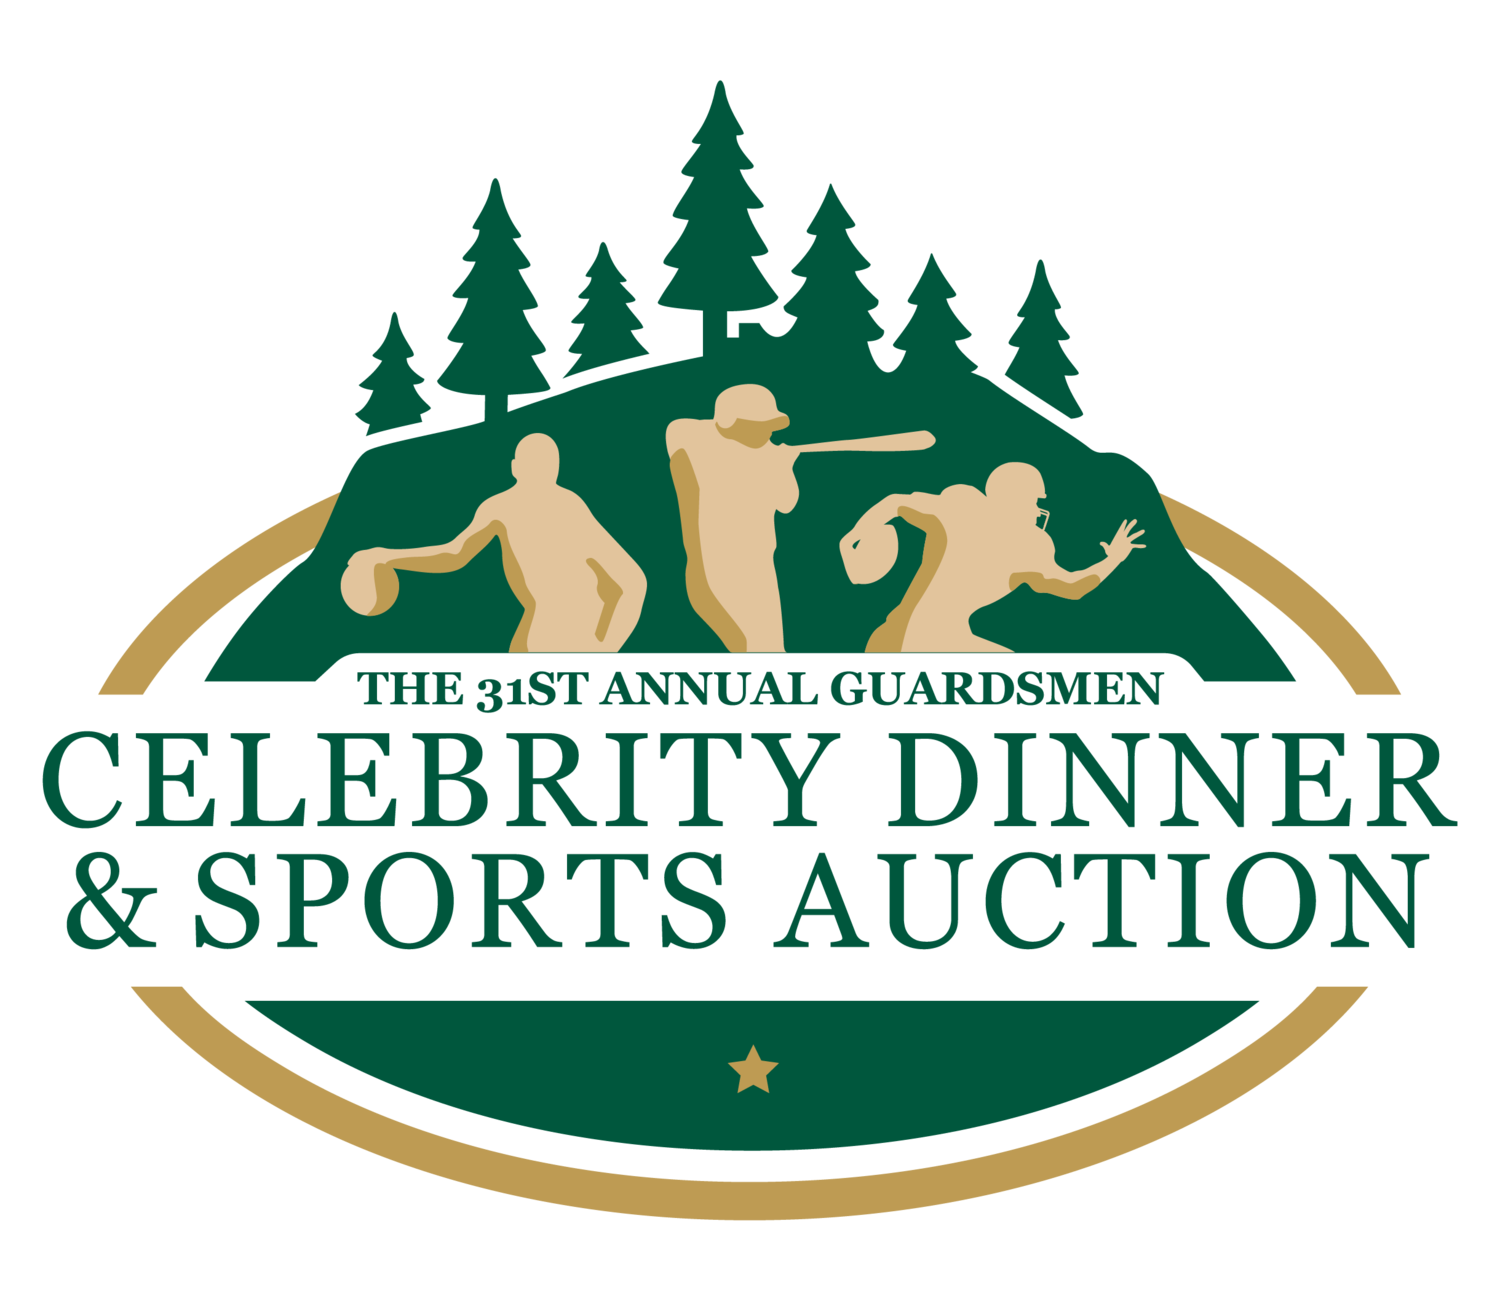 The Guardsmen Celebrity Dinner & Sports Auction